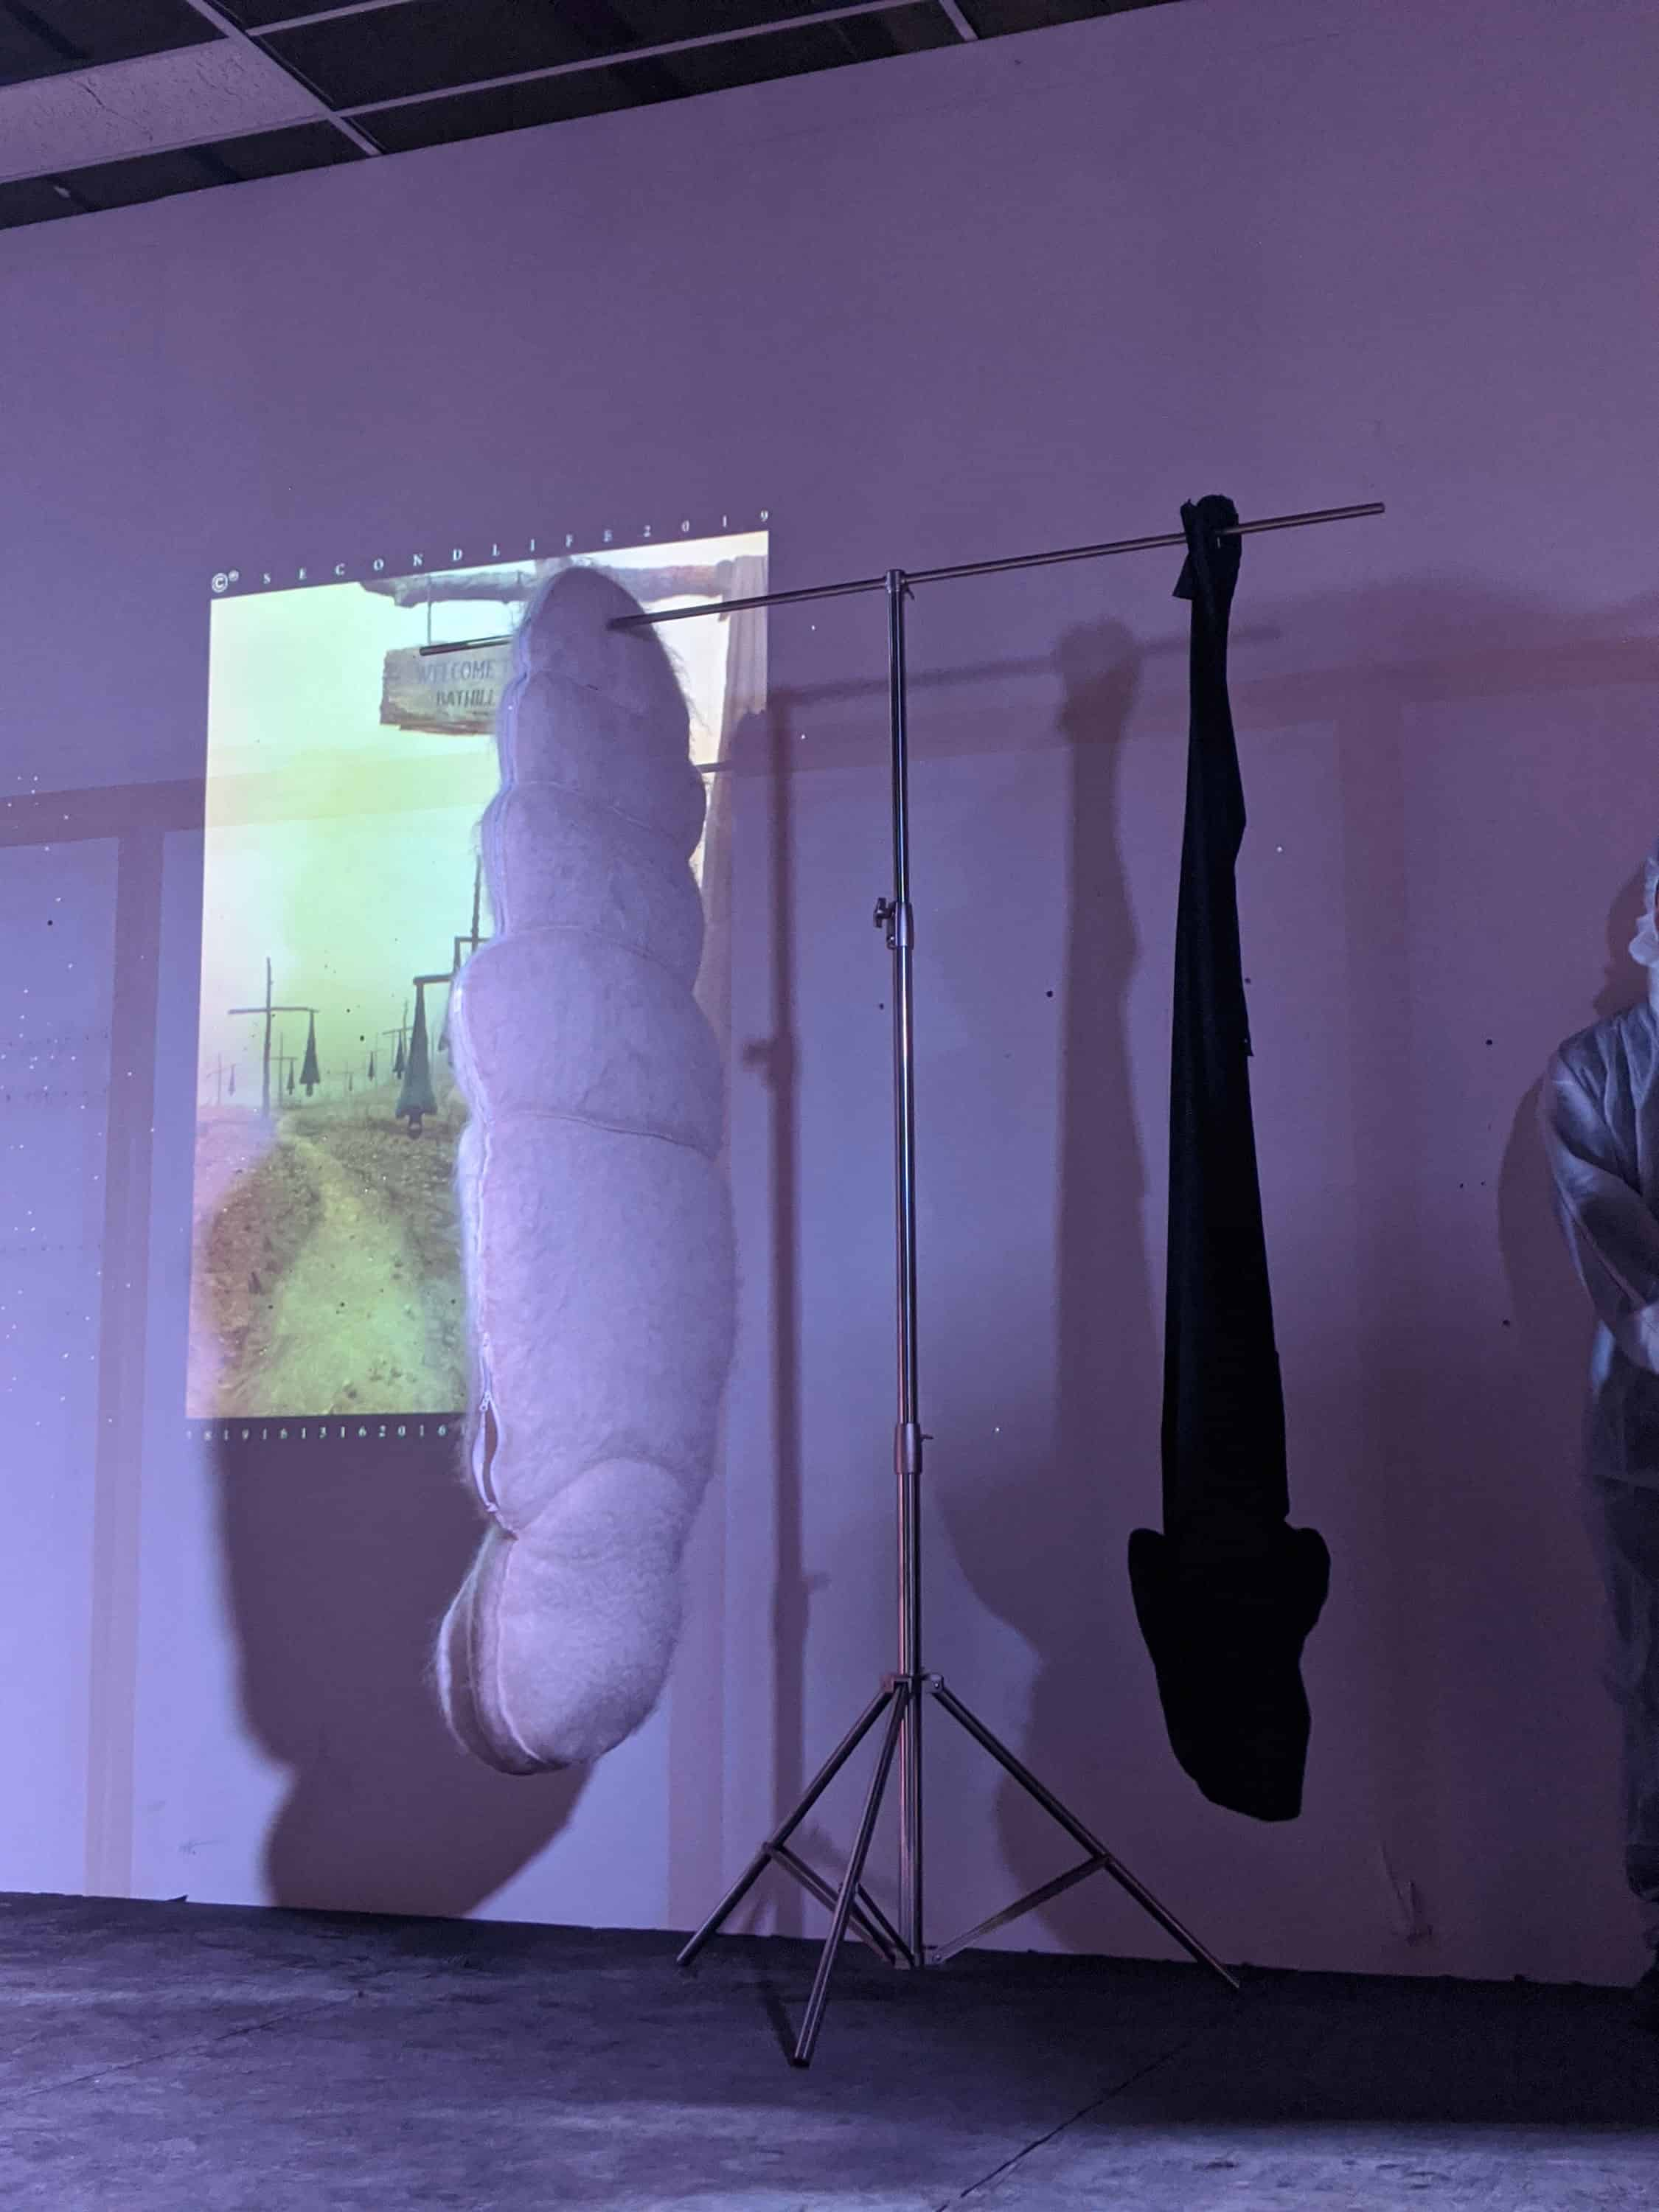 ©®38191613162016135195209451435, 'Second Life. AuctionCR28112019, 2019. Performance, curated by Belinda Martin Porras, The Biscuit Factory, London